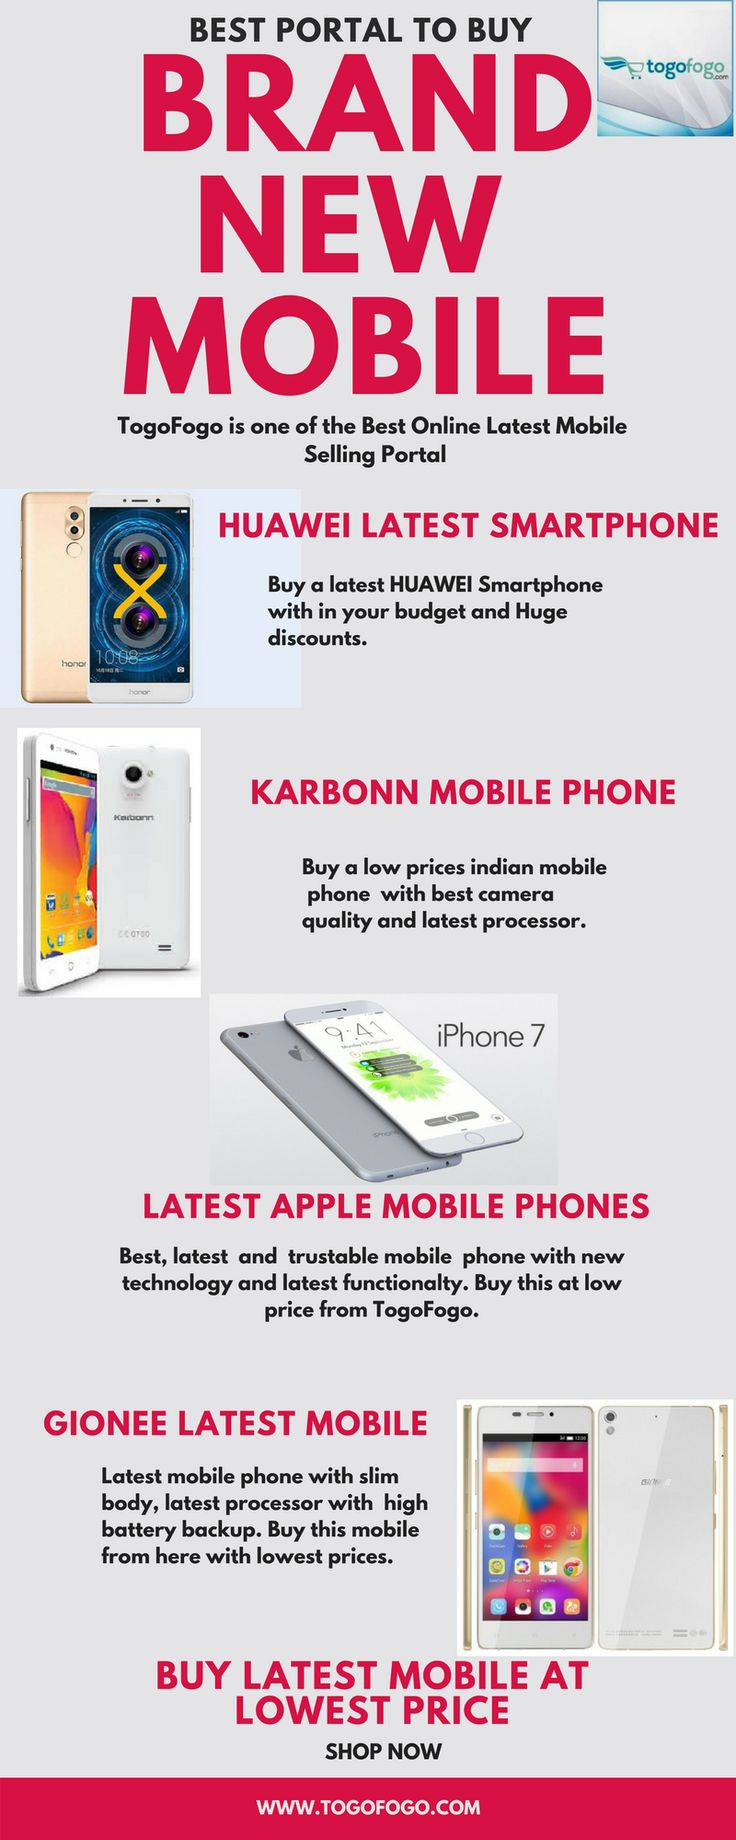 Your smartphones there s big news in the world of mobile shopping - Buy Brand New Mobile Togofogo Is One Of The Best Online Latest Mobile Phone Selling